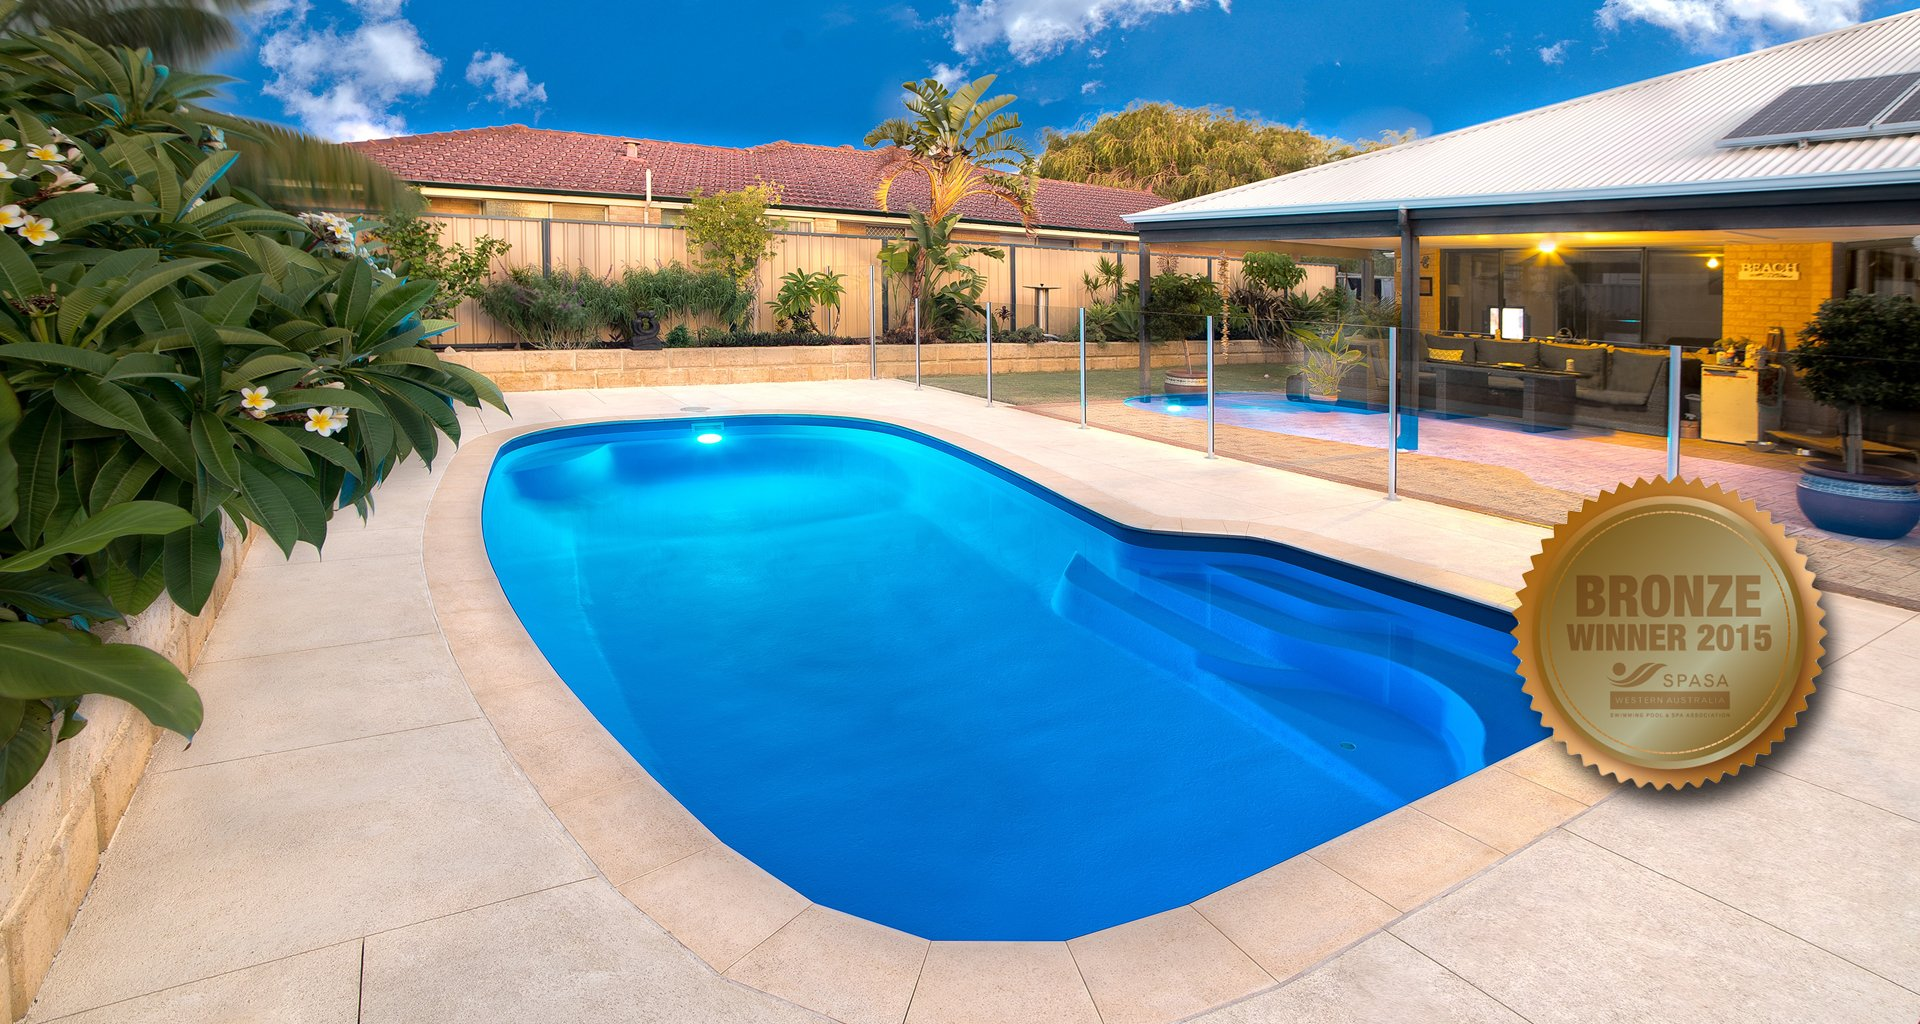 Palm City Pools Bronze Award 2015